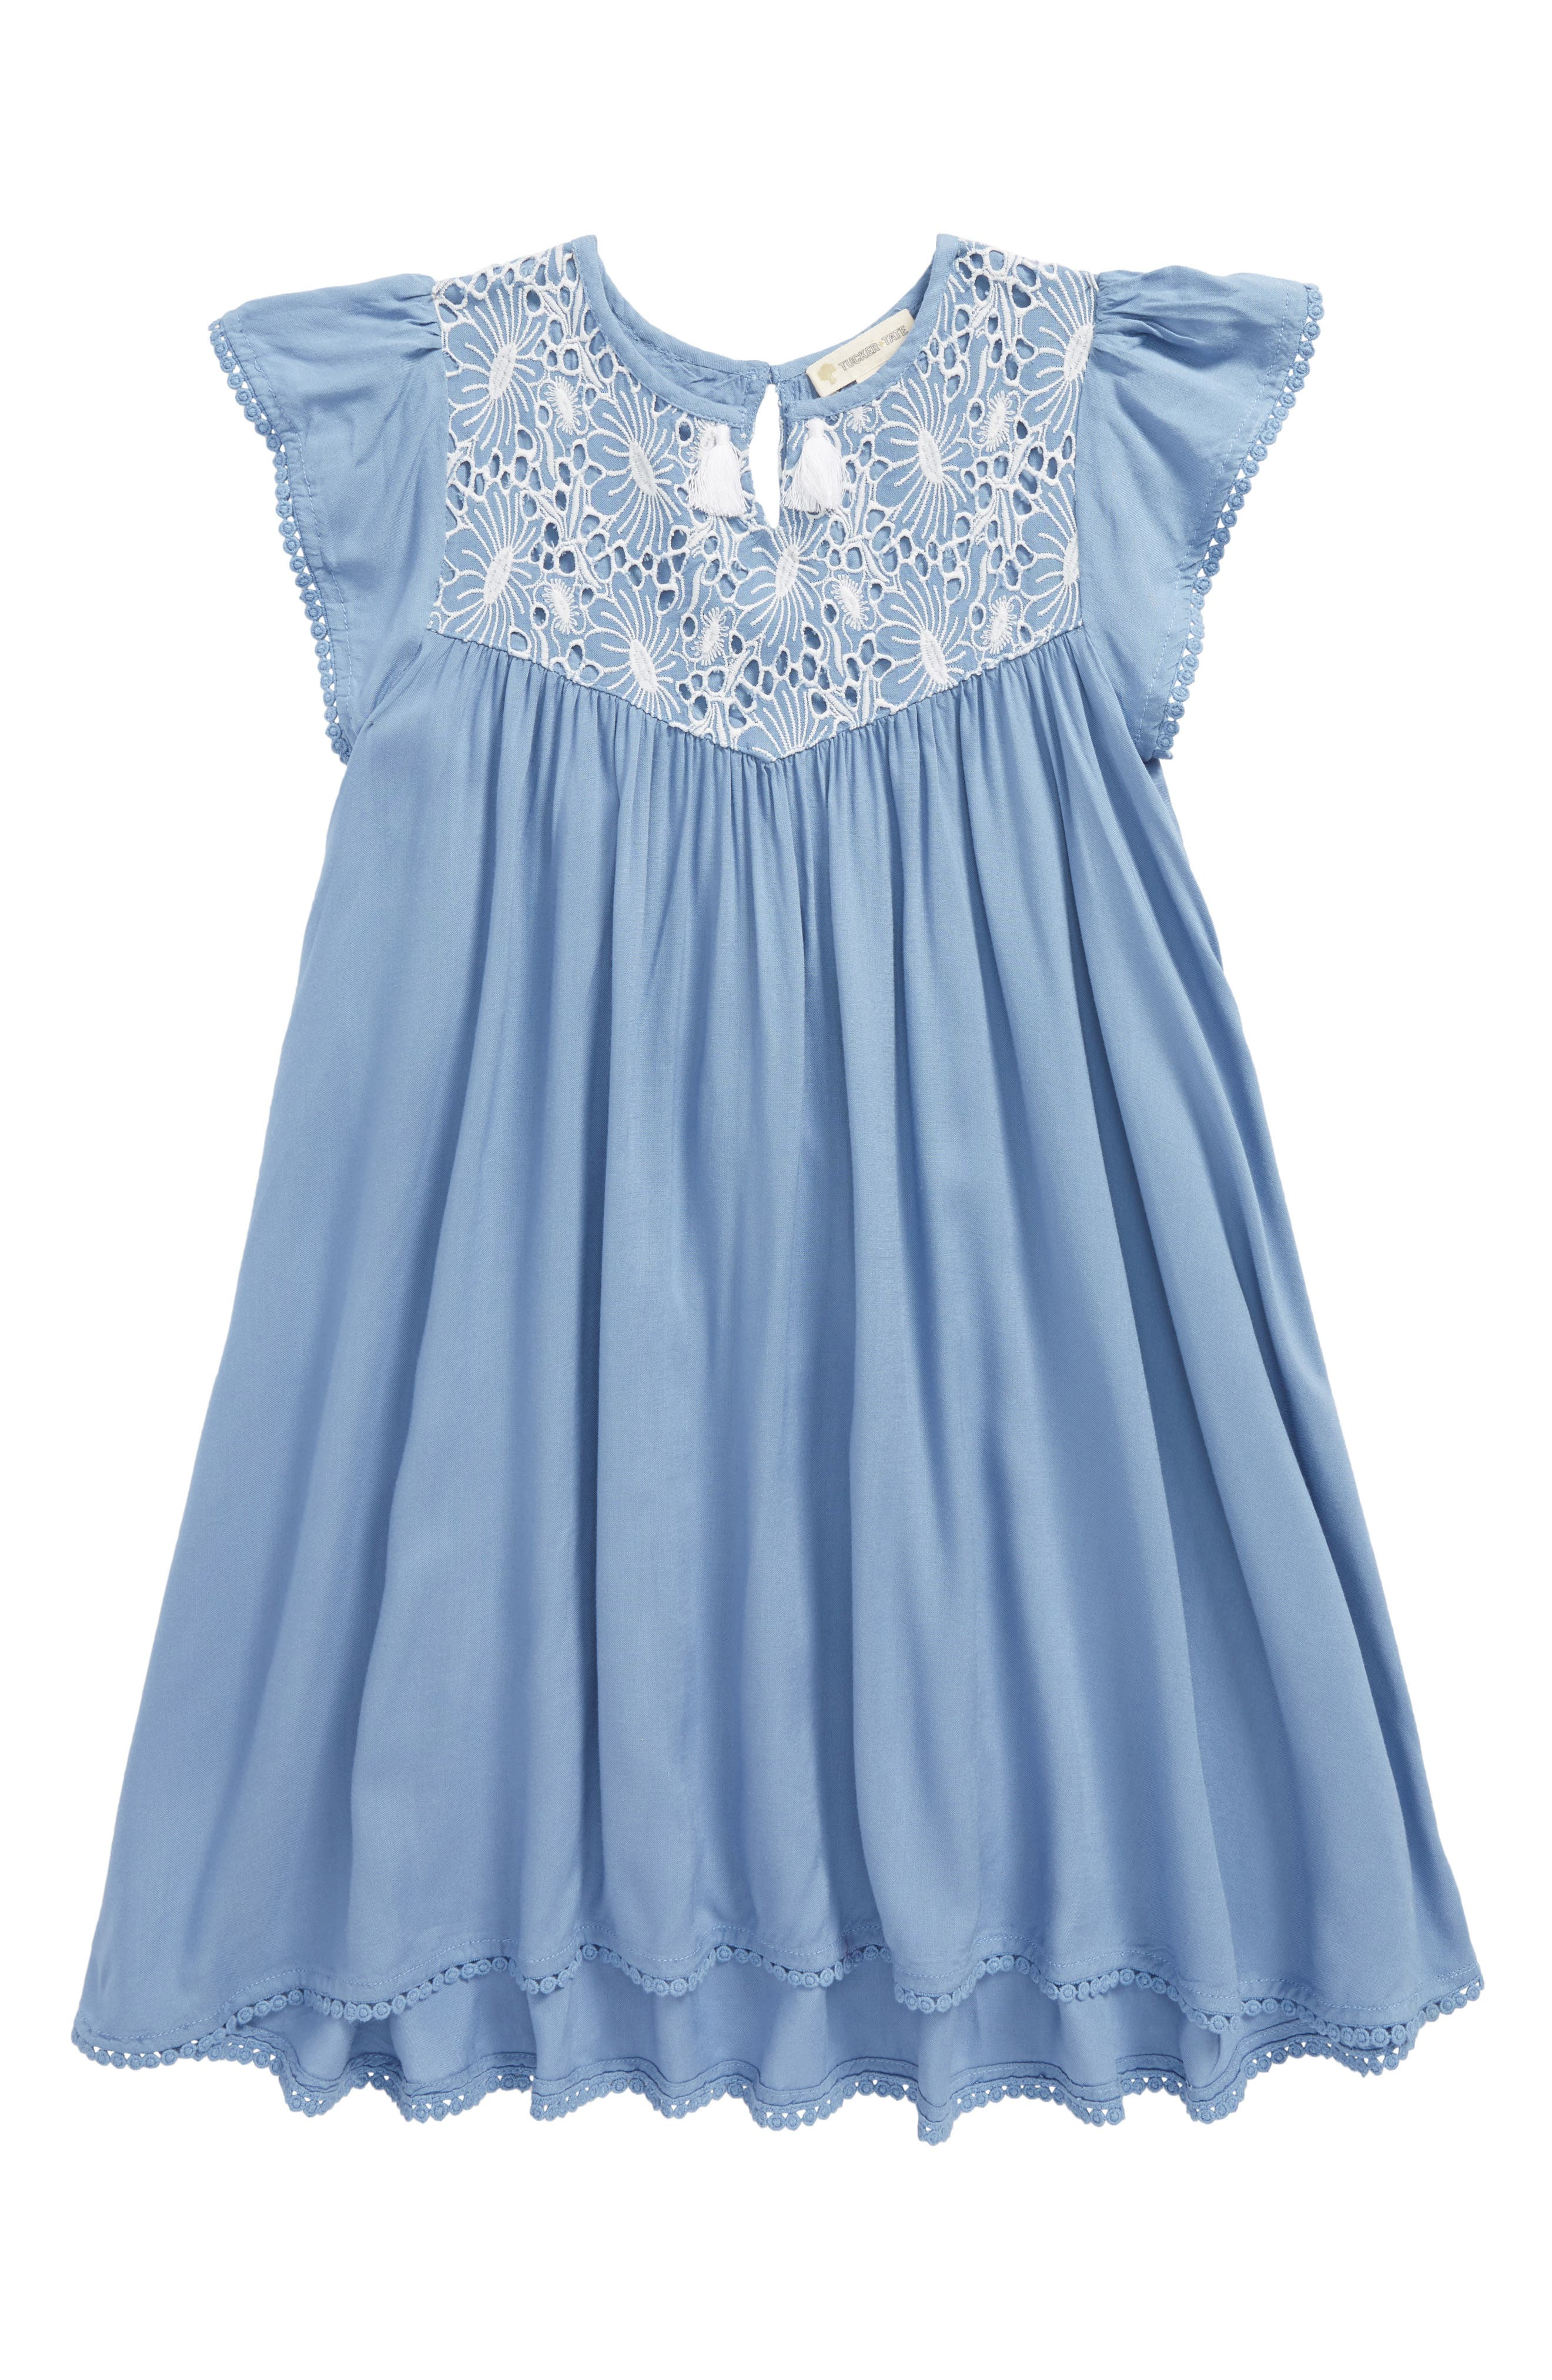 Embroidered Tassel Dress,                             Main thumbnail 1, color,                             420